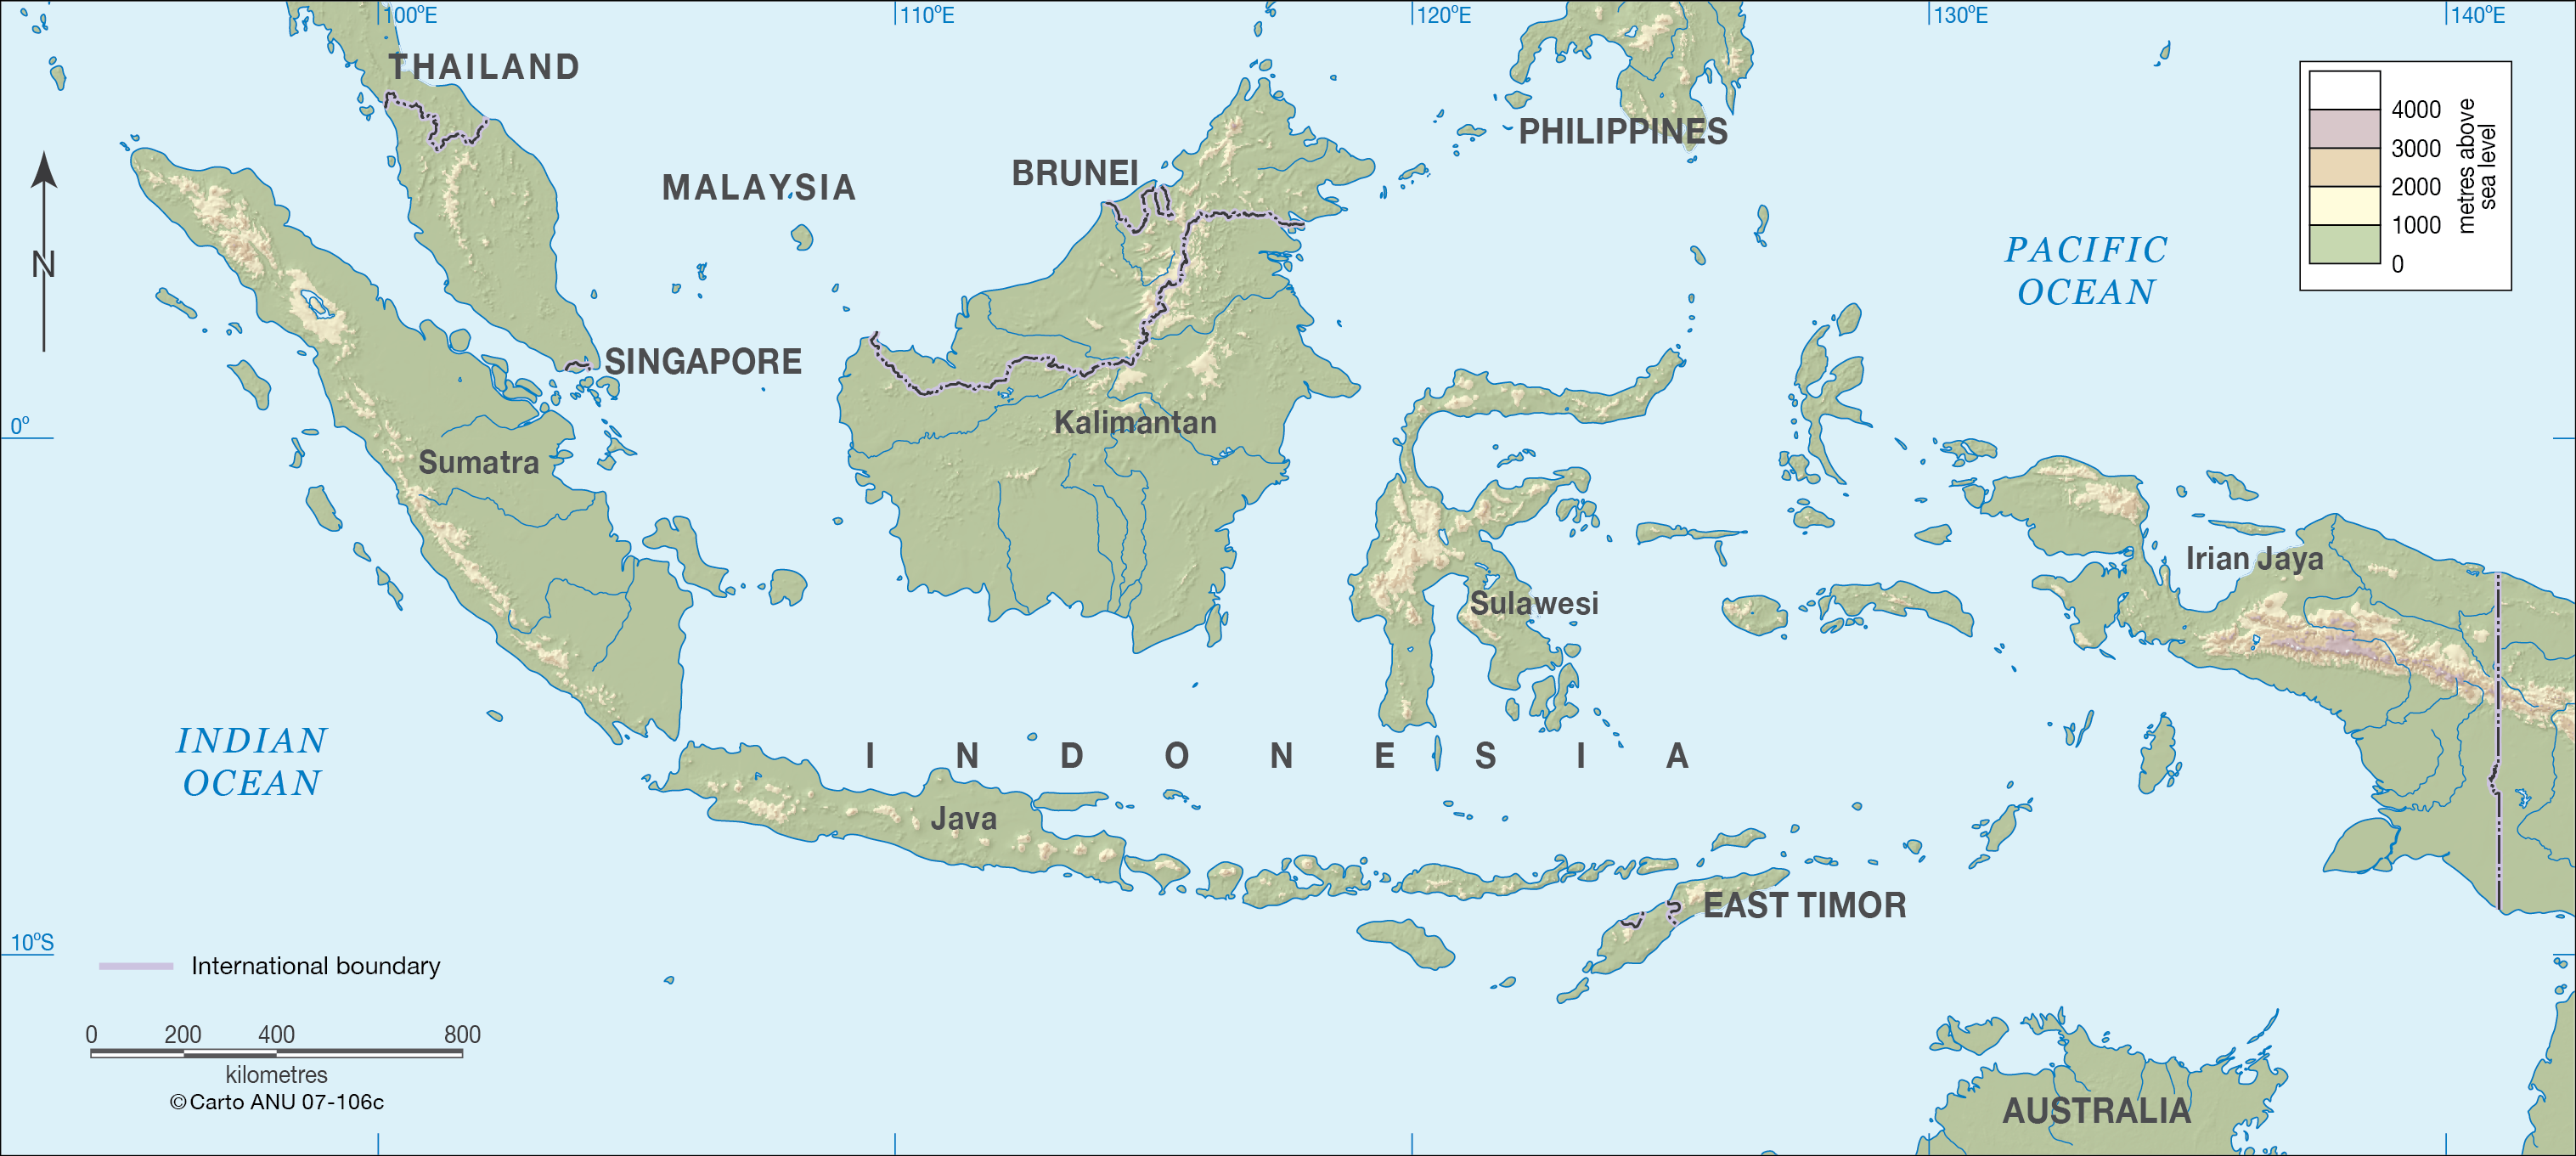 Indonesia CartoGIS Services Maps Online ANU - Indonesia map